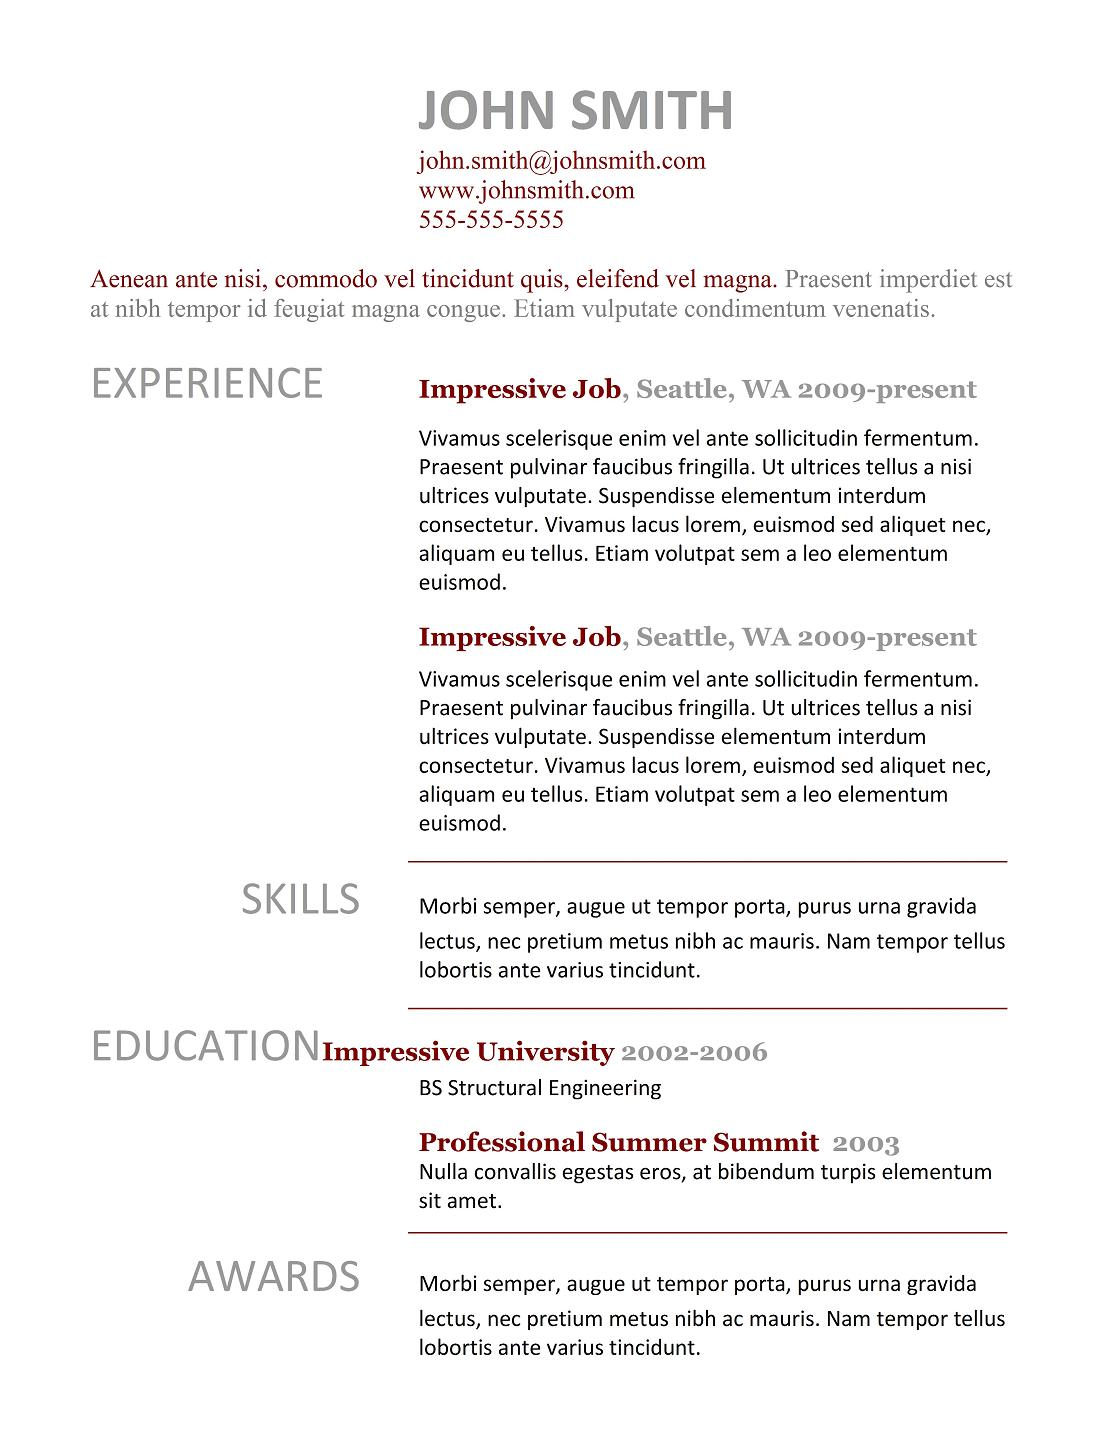 Professional Examples Of Resumes 5 Best Examples Of Resume Tips 2015 Doc Format Best